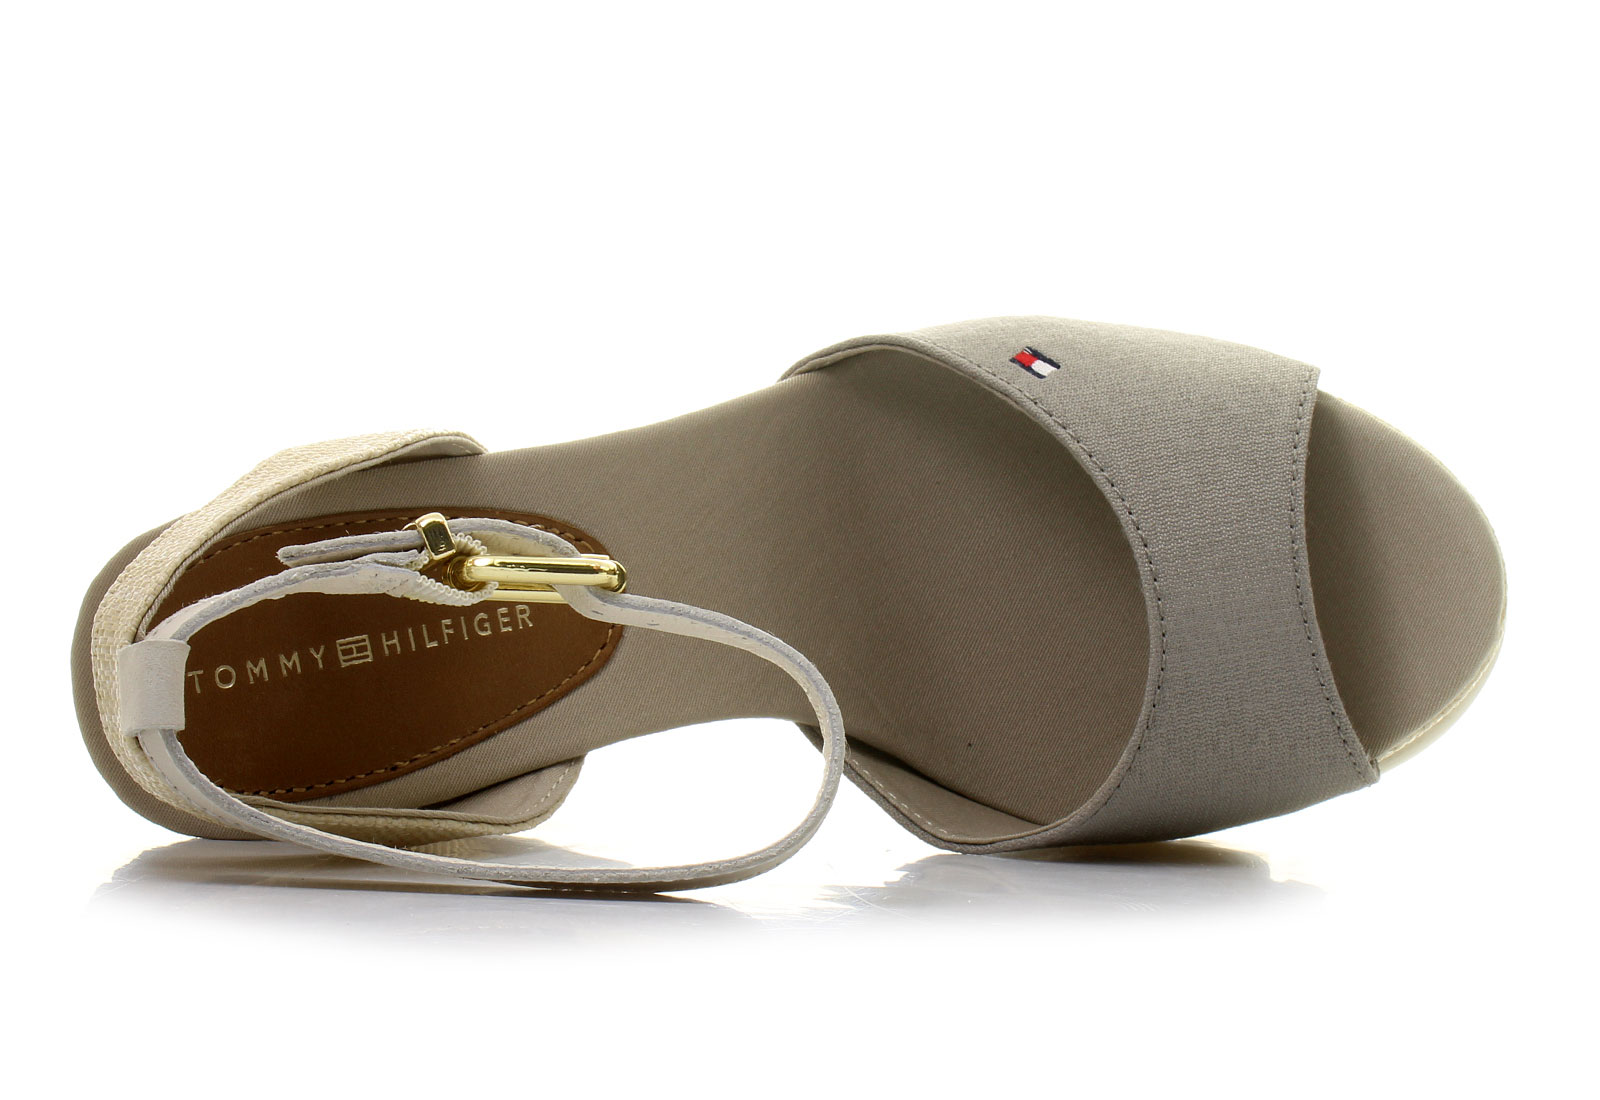 6a3b27acda7c4 Tommy Hilfiger Sandale - Valencia 1d - 16S-0747-050 - Office Shoes ...